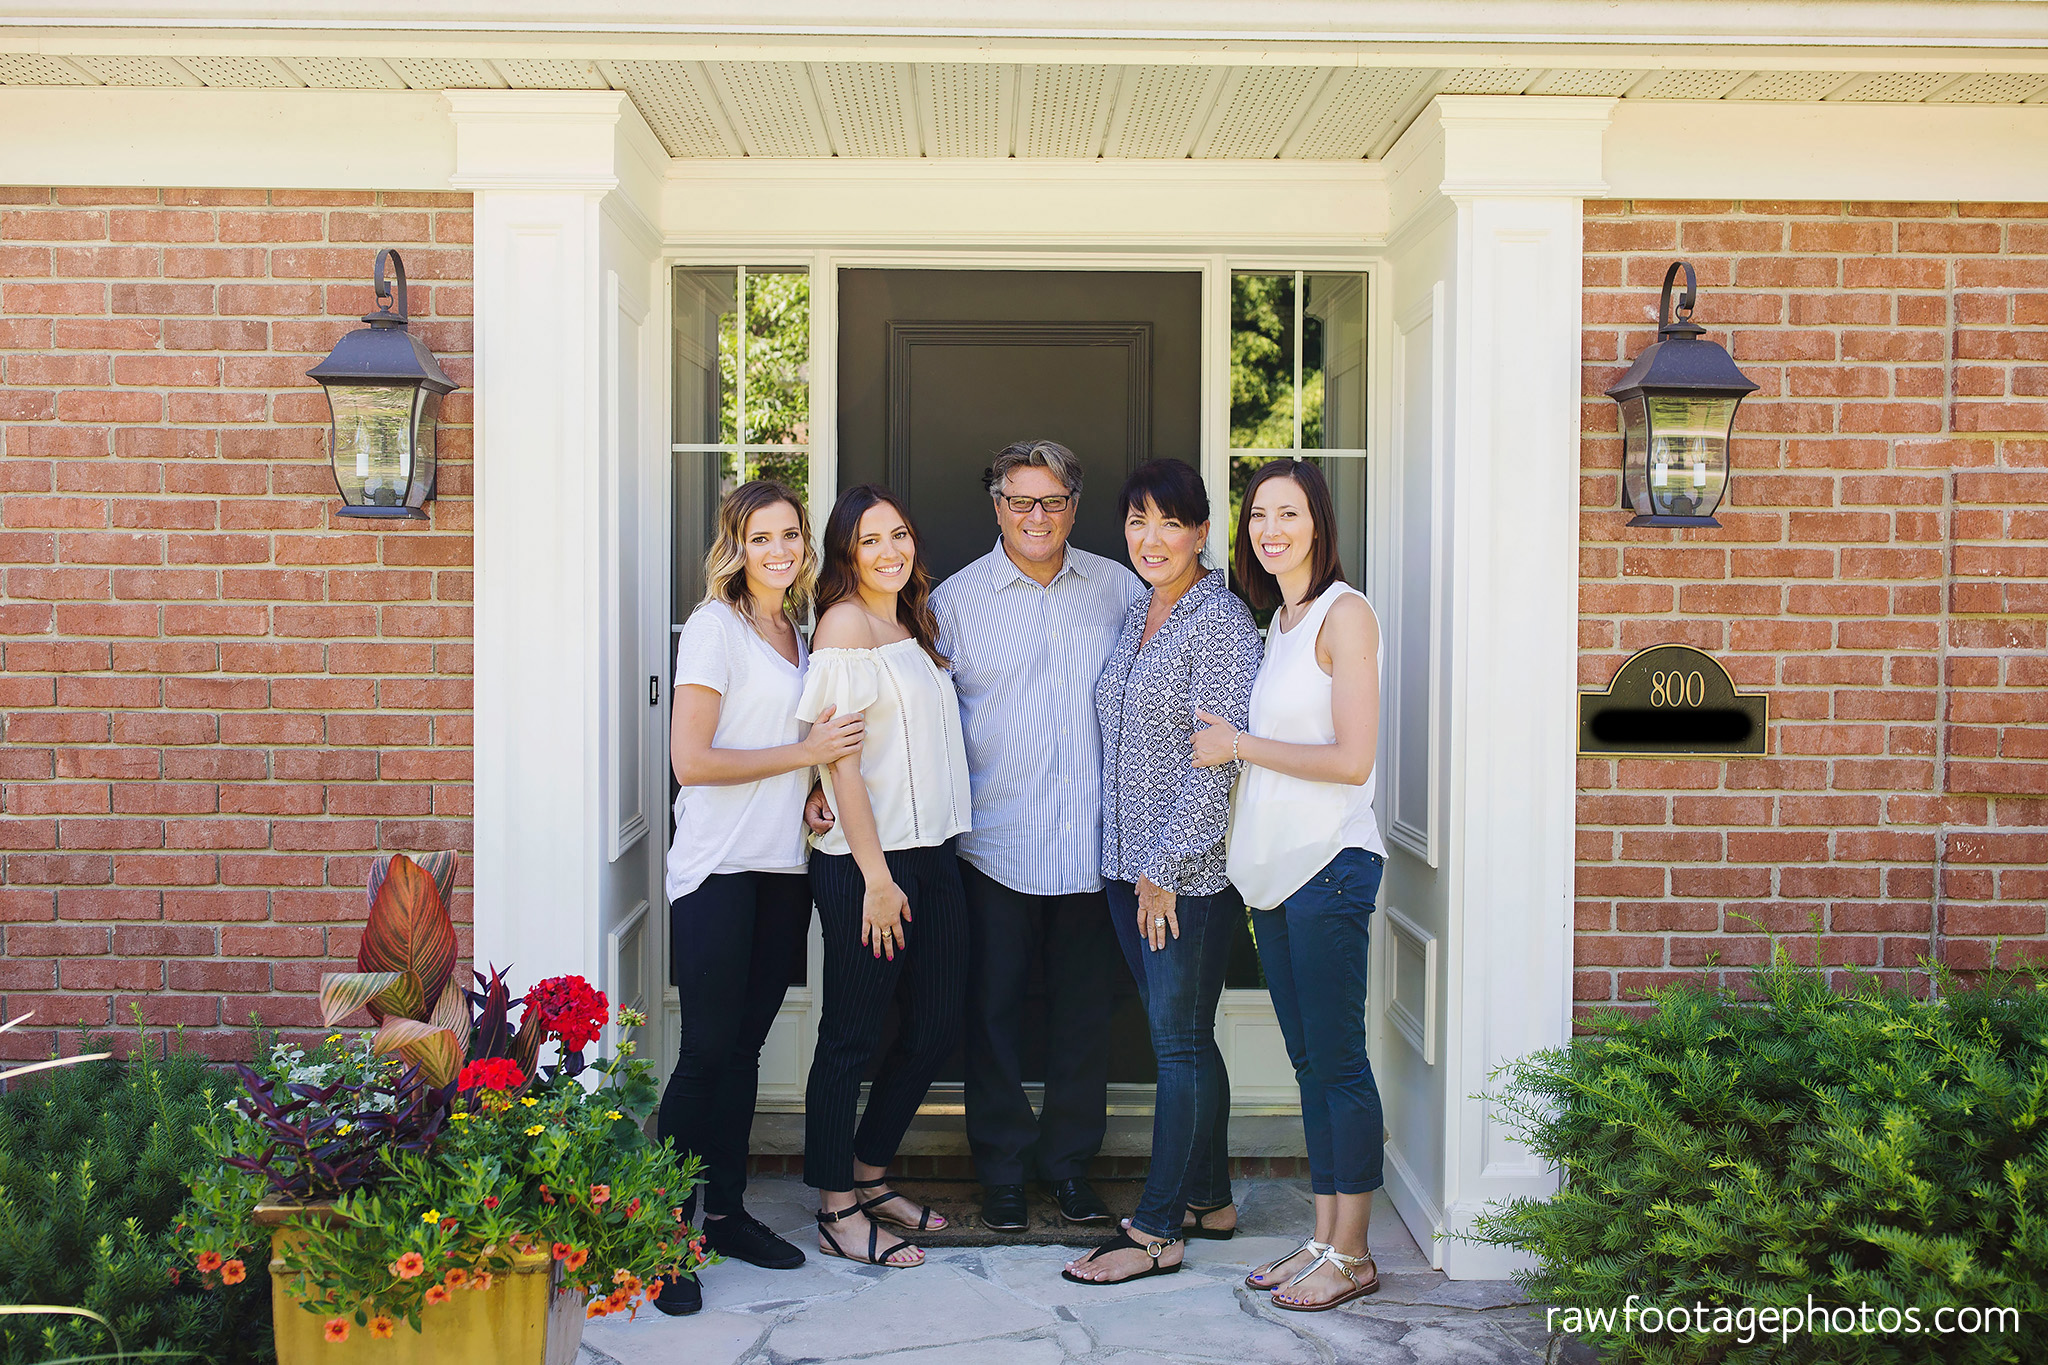 london_ontario_family_photographer-extended_family_session-raw_footage_photography009.jpg